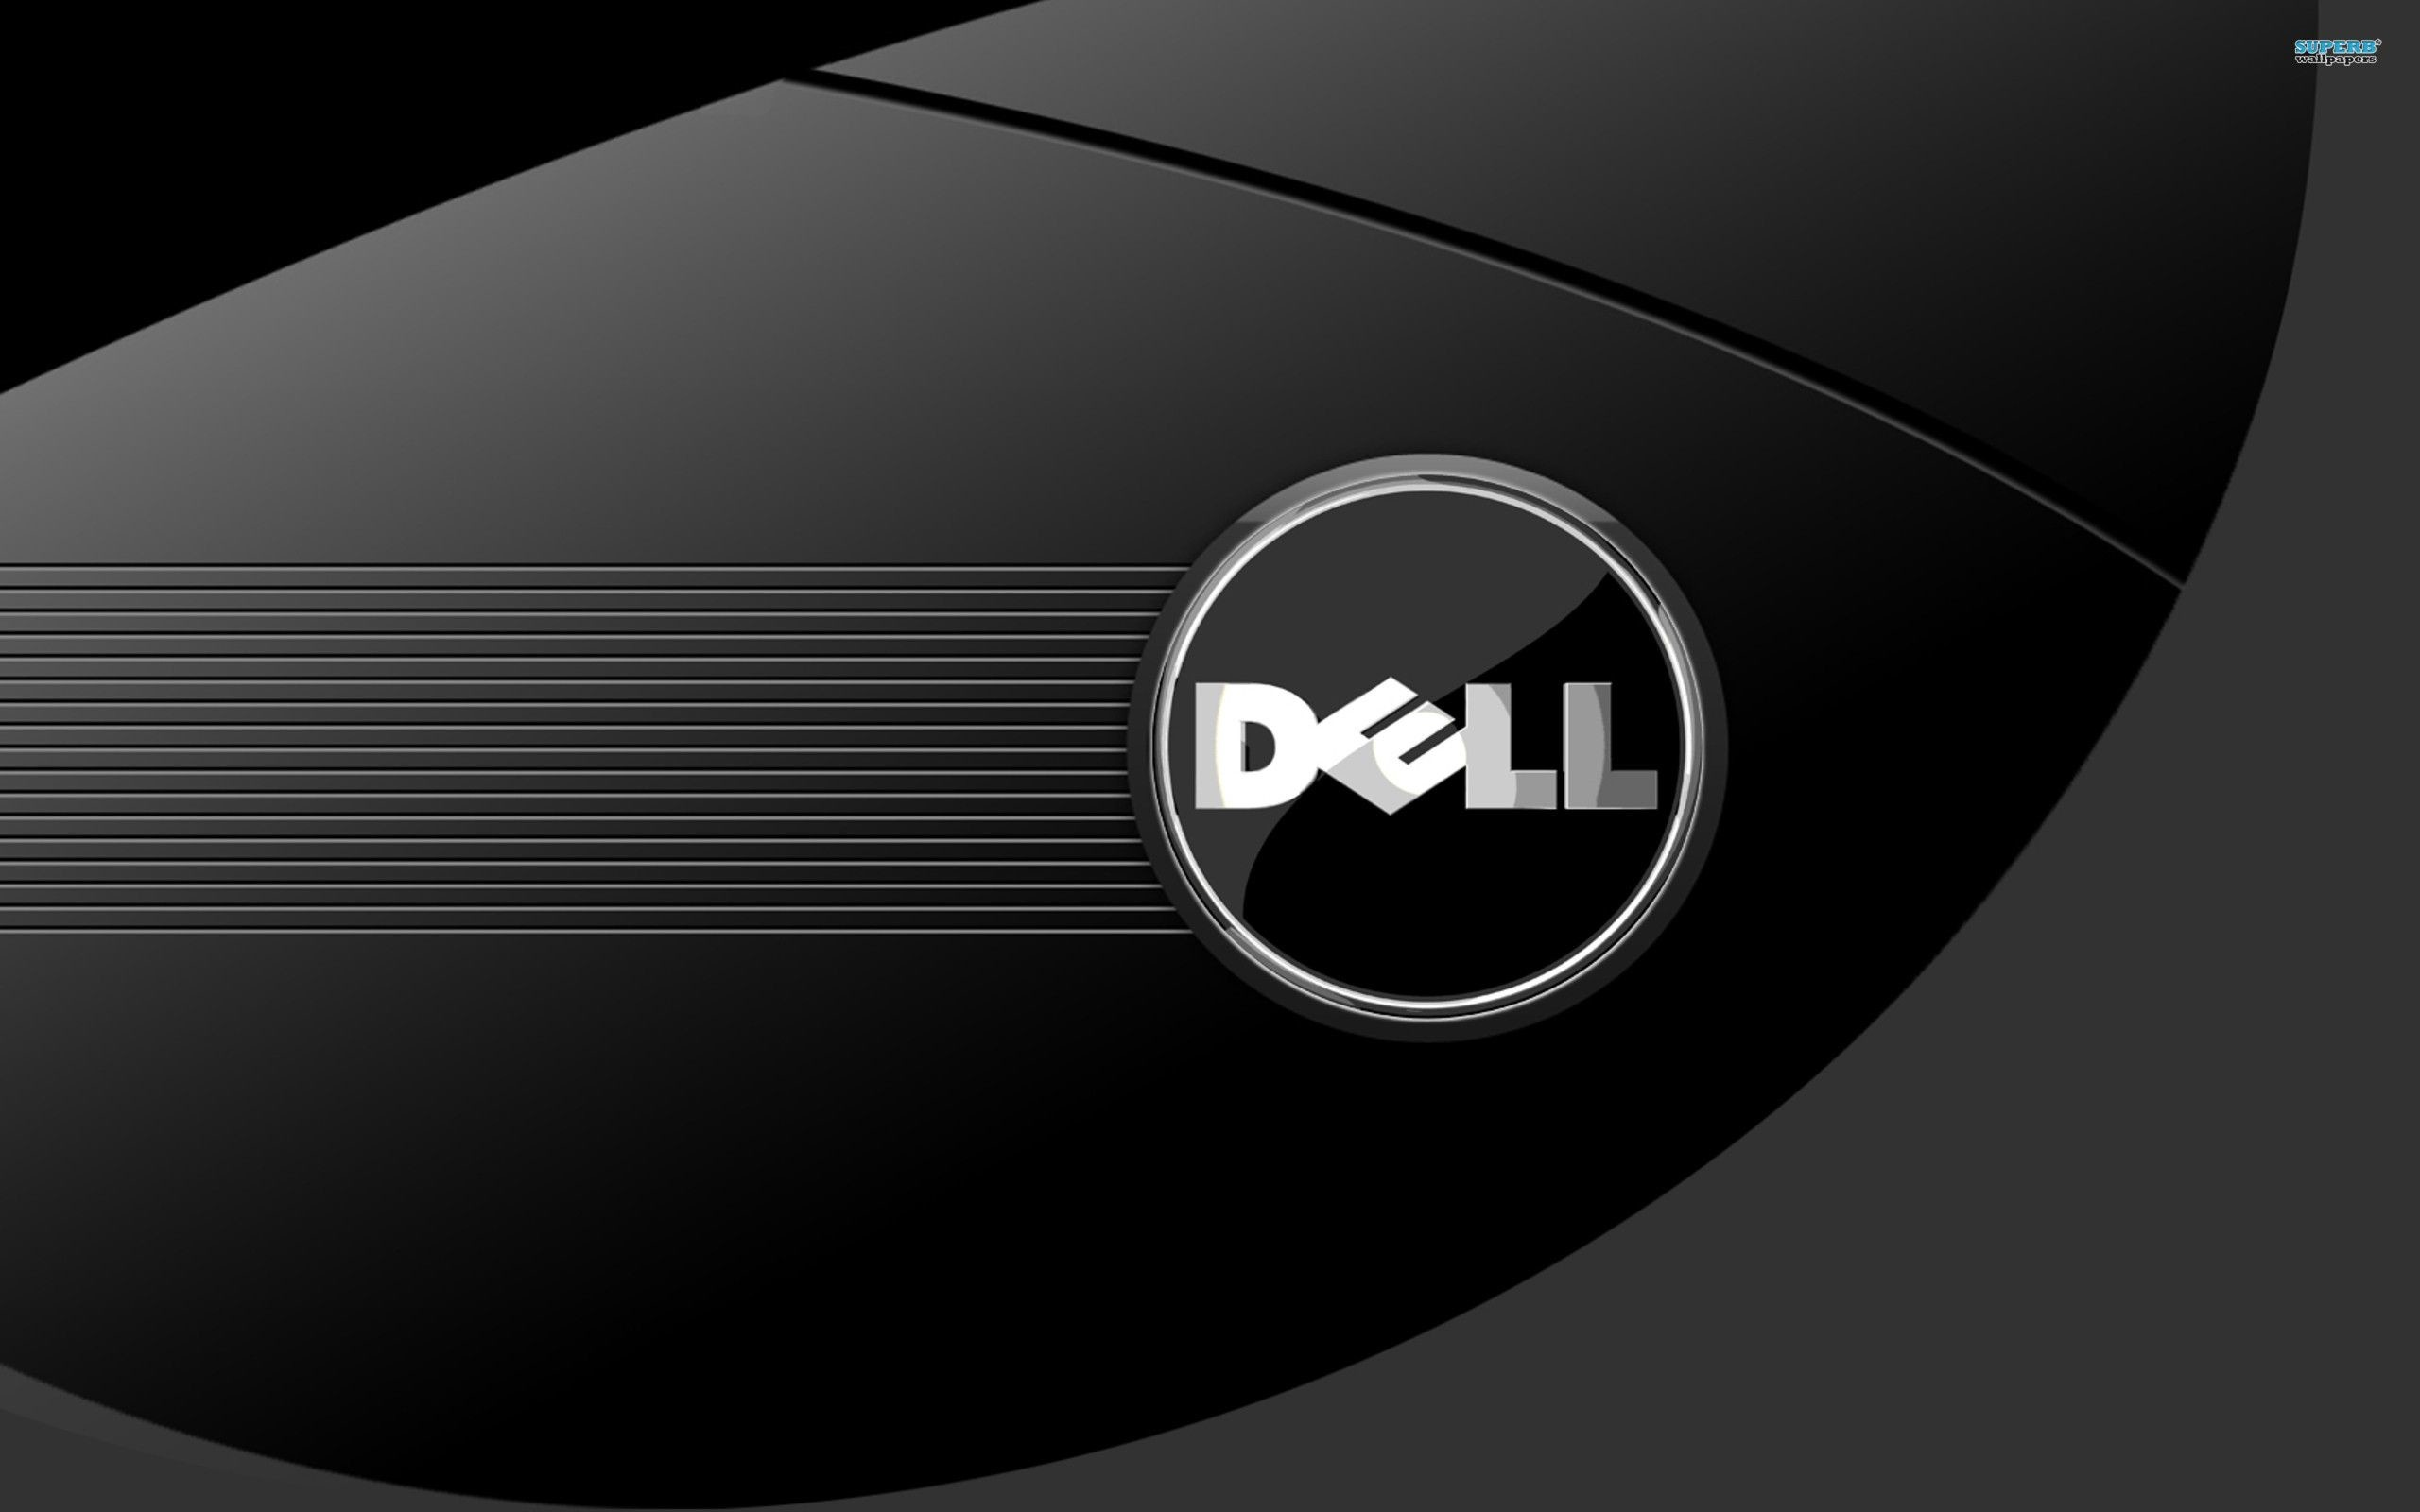 2560x1600 Dell Desktop Background Size New Dell Xps Wallpapers Wallpaper Hd Wallpapers  Pinterest